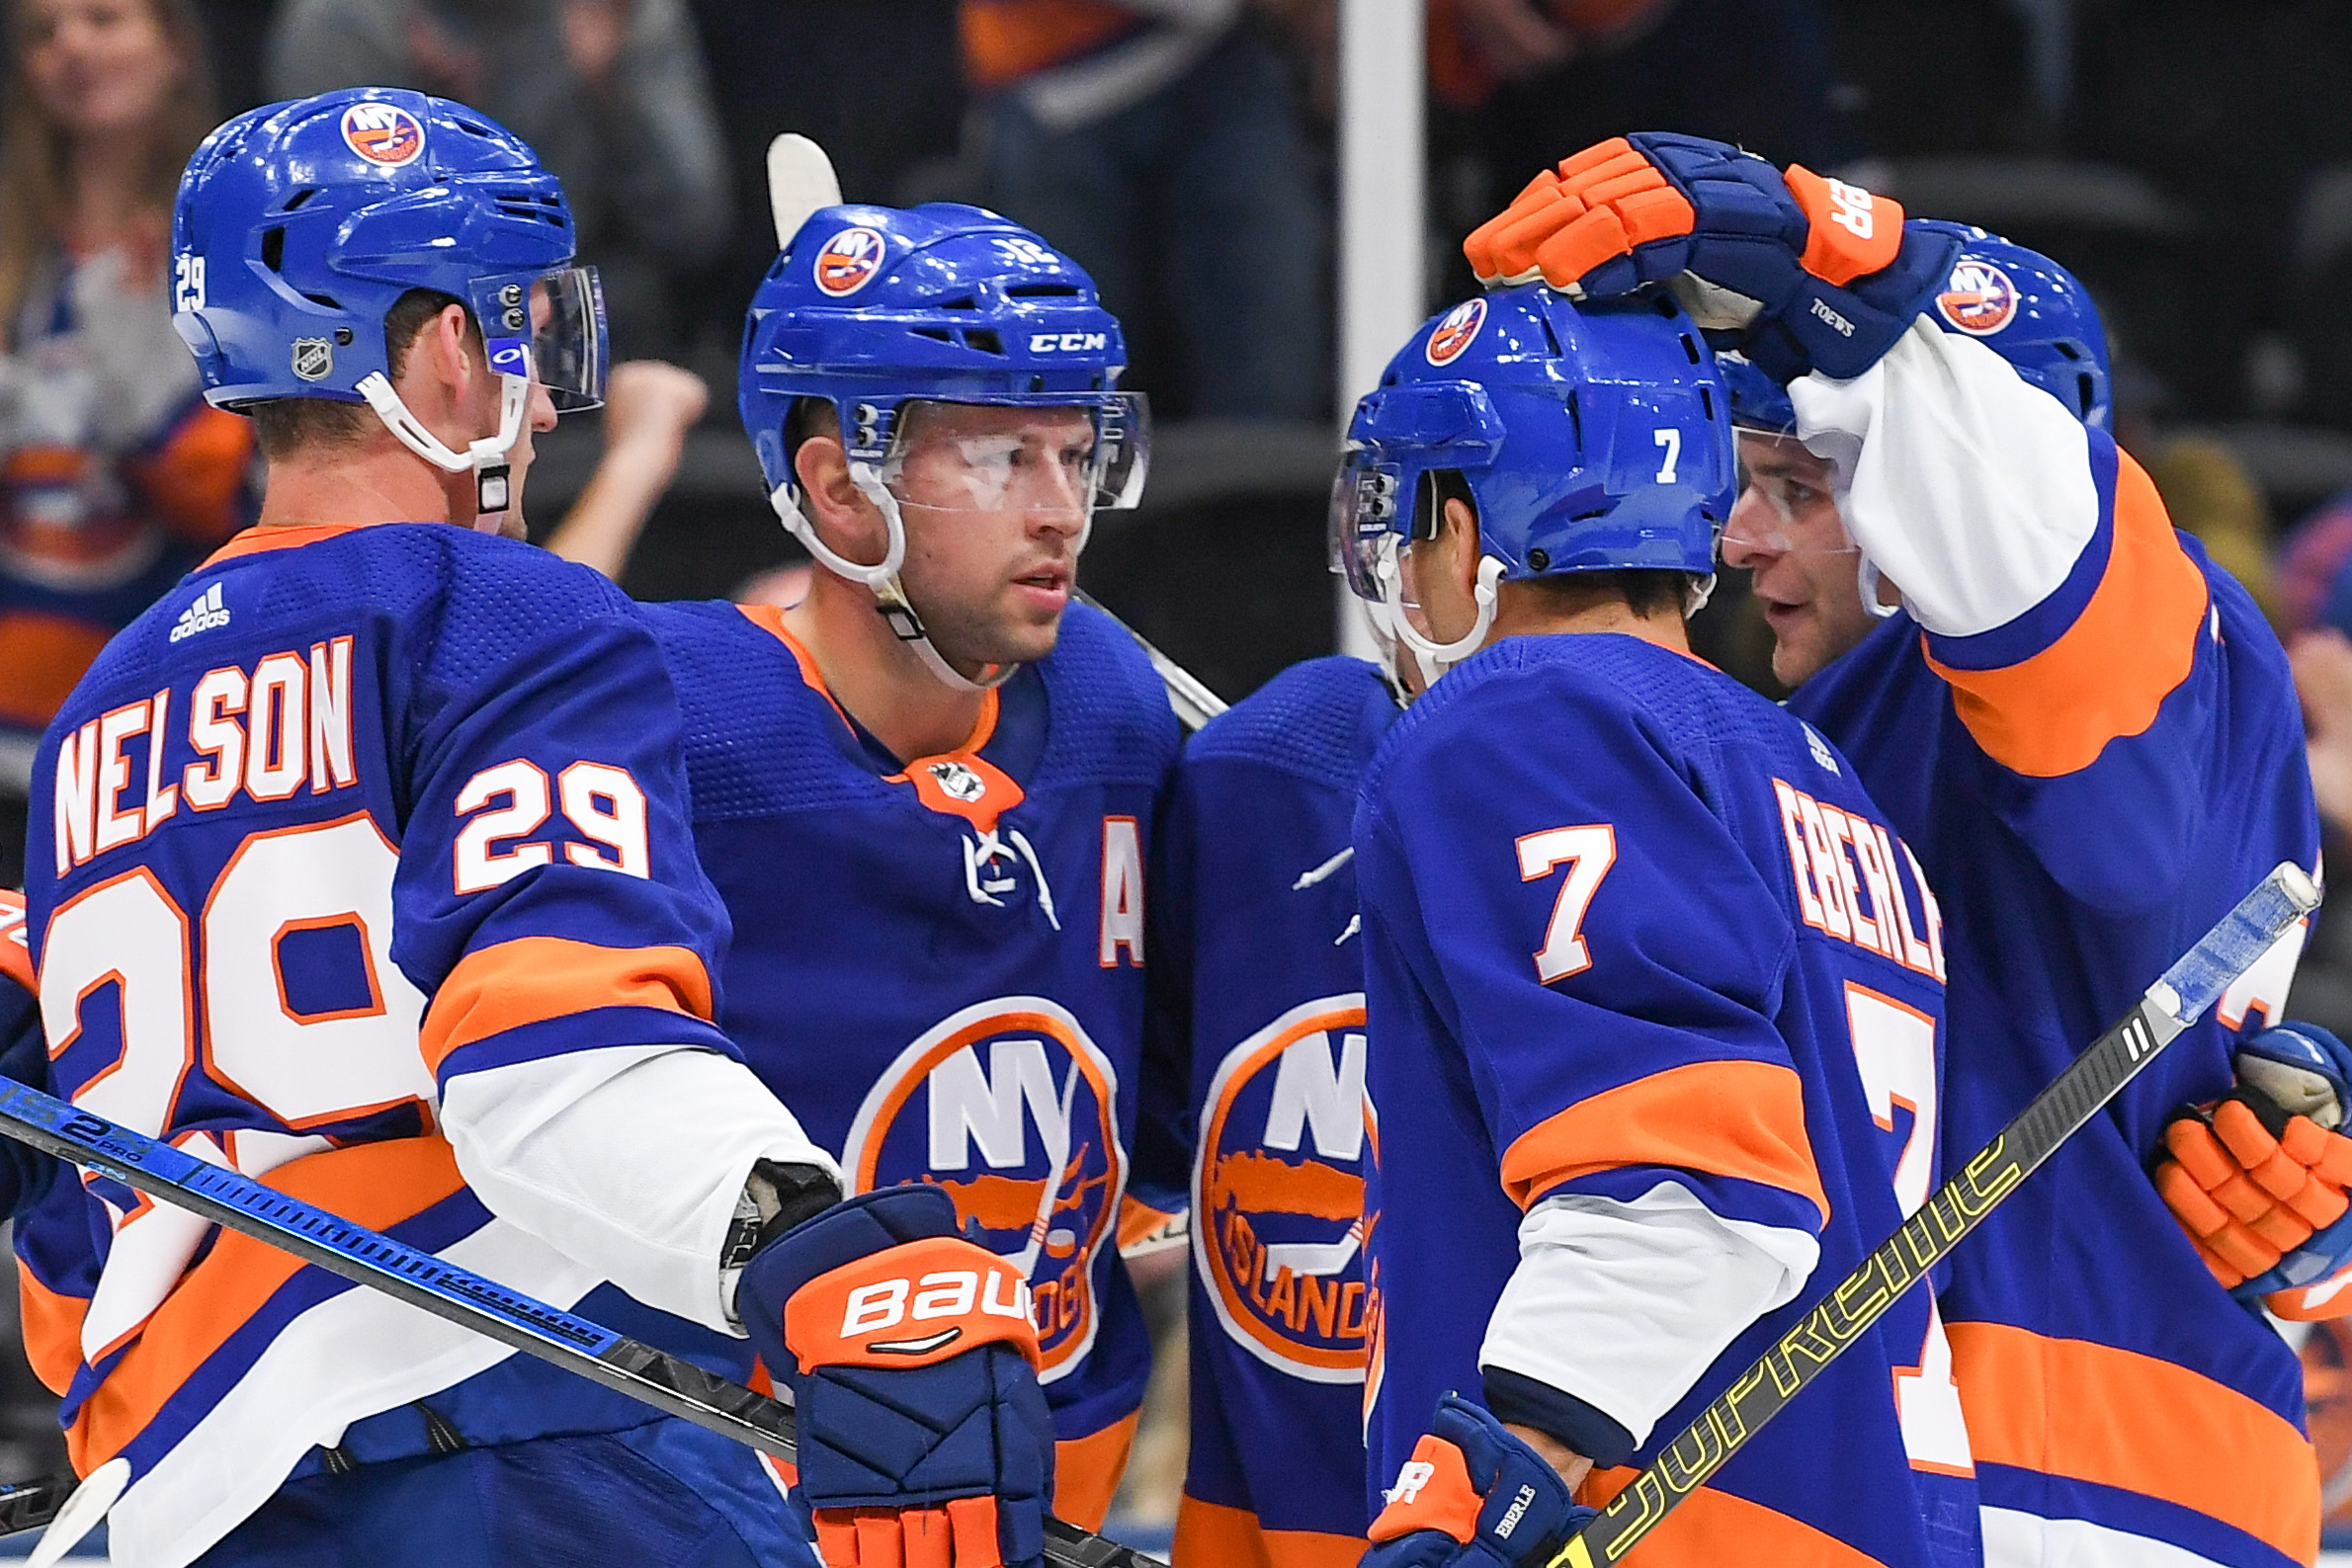 Oct 6, 2019; Brooklyn, NY, USA; New York Islanders celebrate the goal by left wing Anders Lee (27) against the Winnipeg Jets during the second period at Nassau Veterans Memorial Coliseum. Mandatory Credit: Dennis Schneidler-USA TODAY Sports